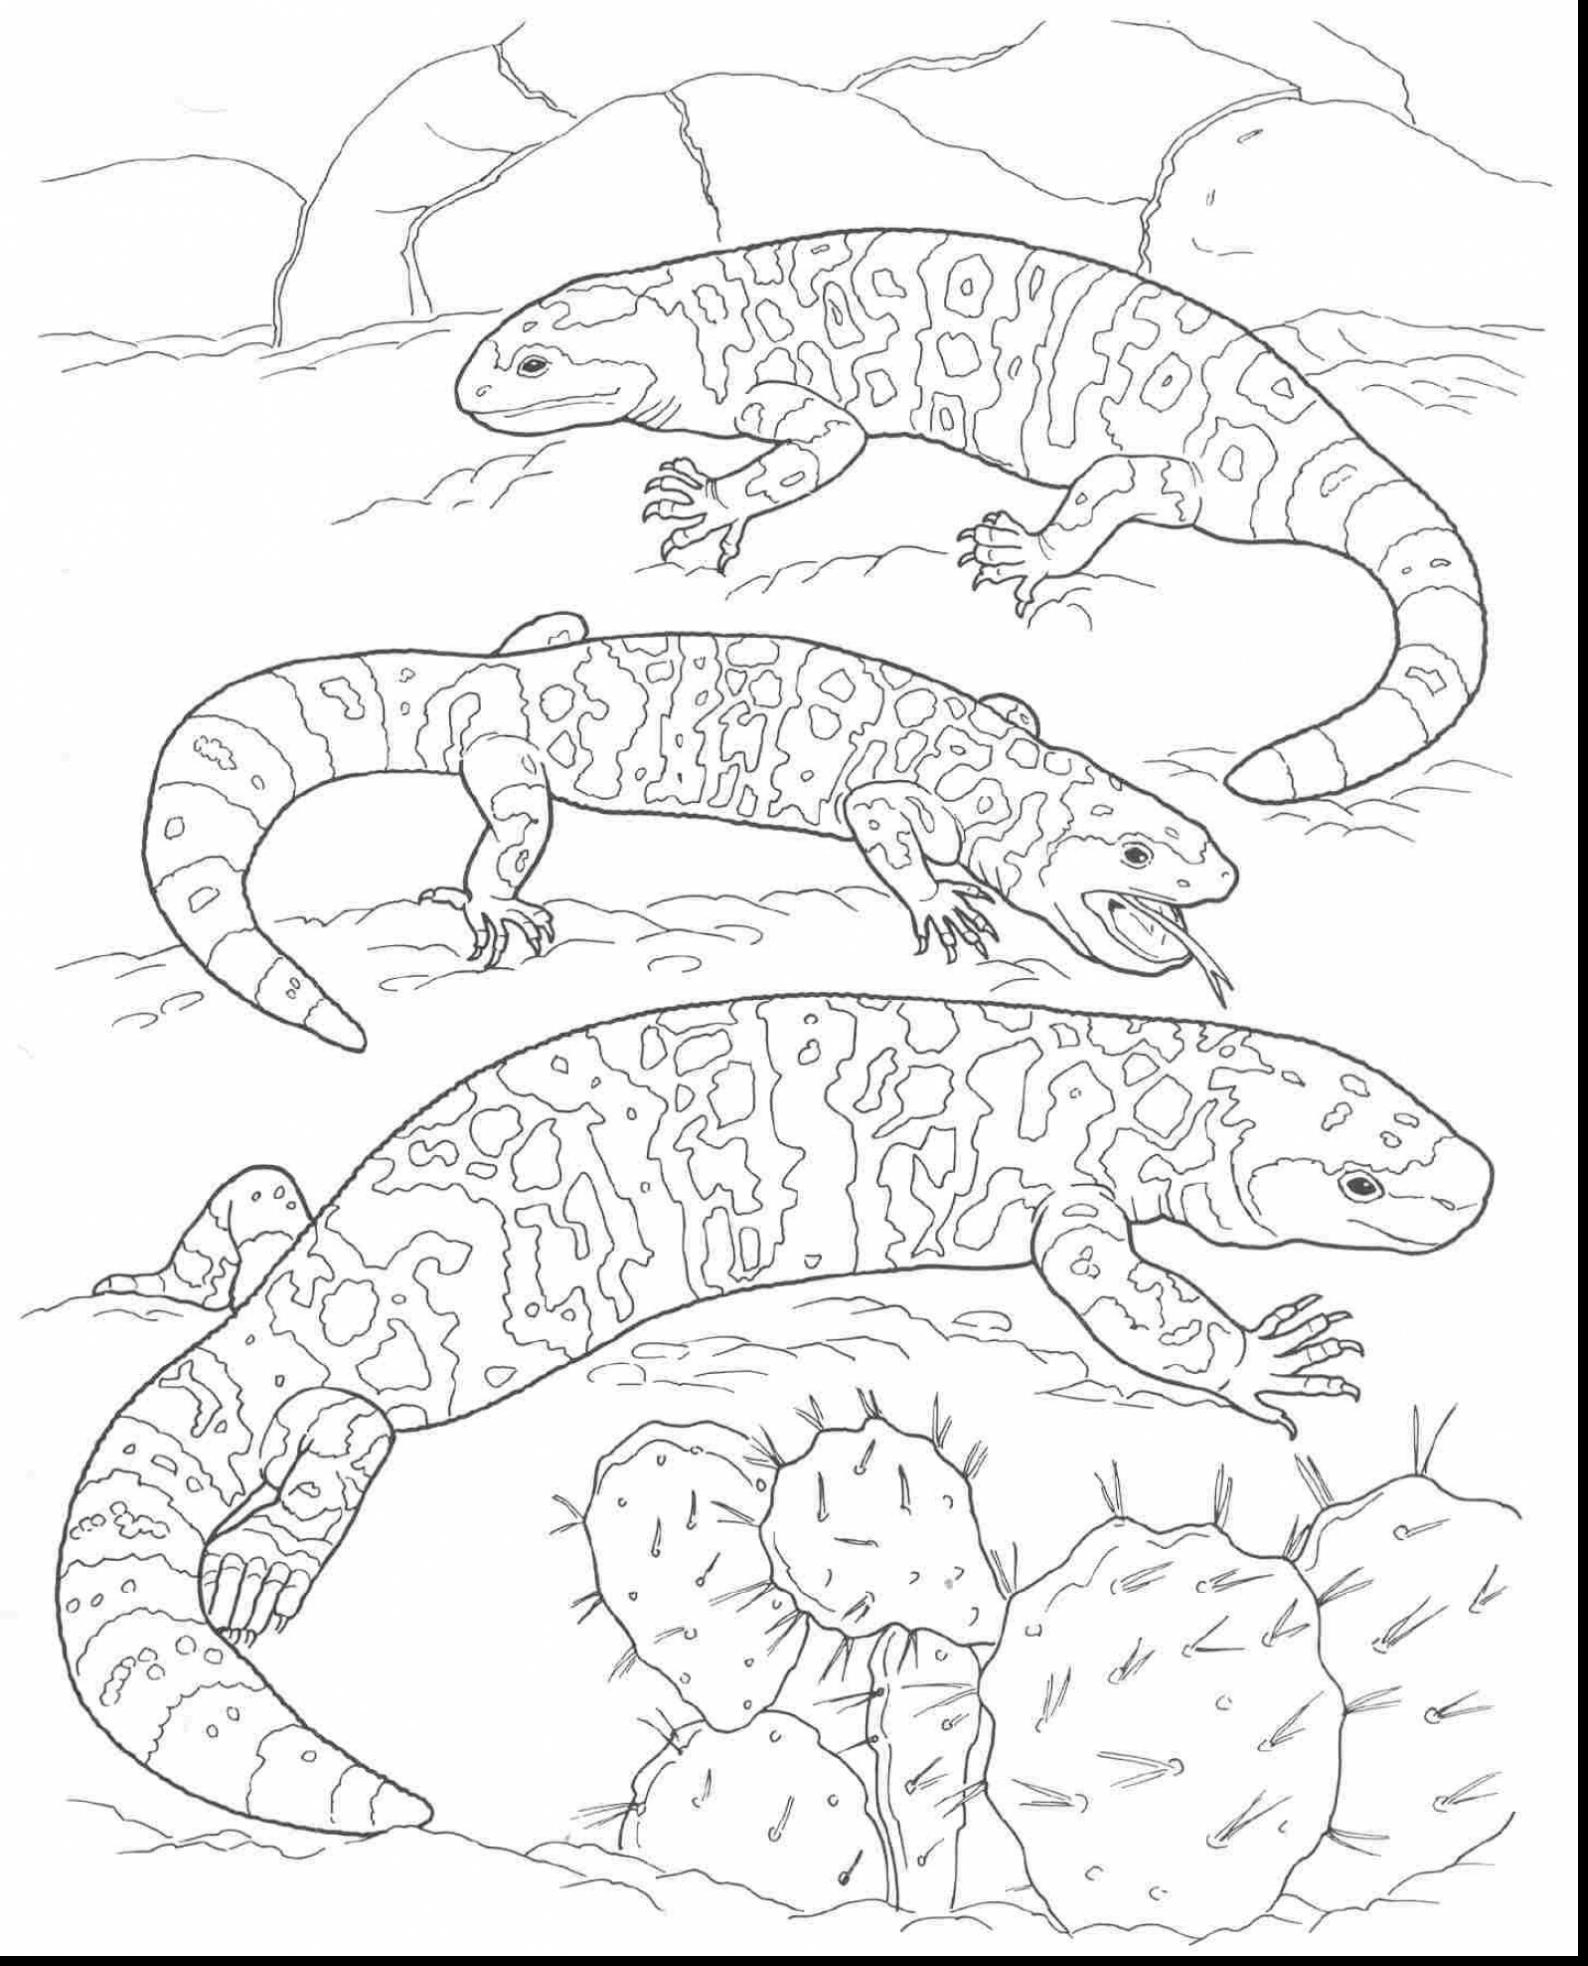 Desert Oasis Coloring Pages At Getdrawings